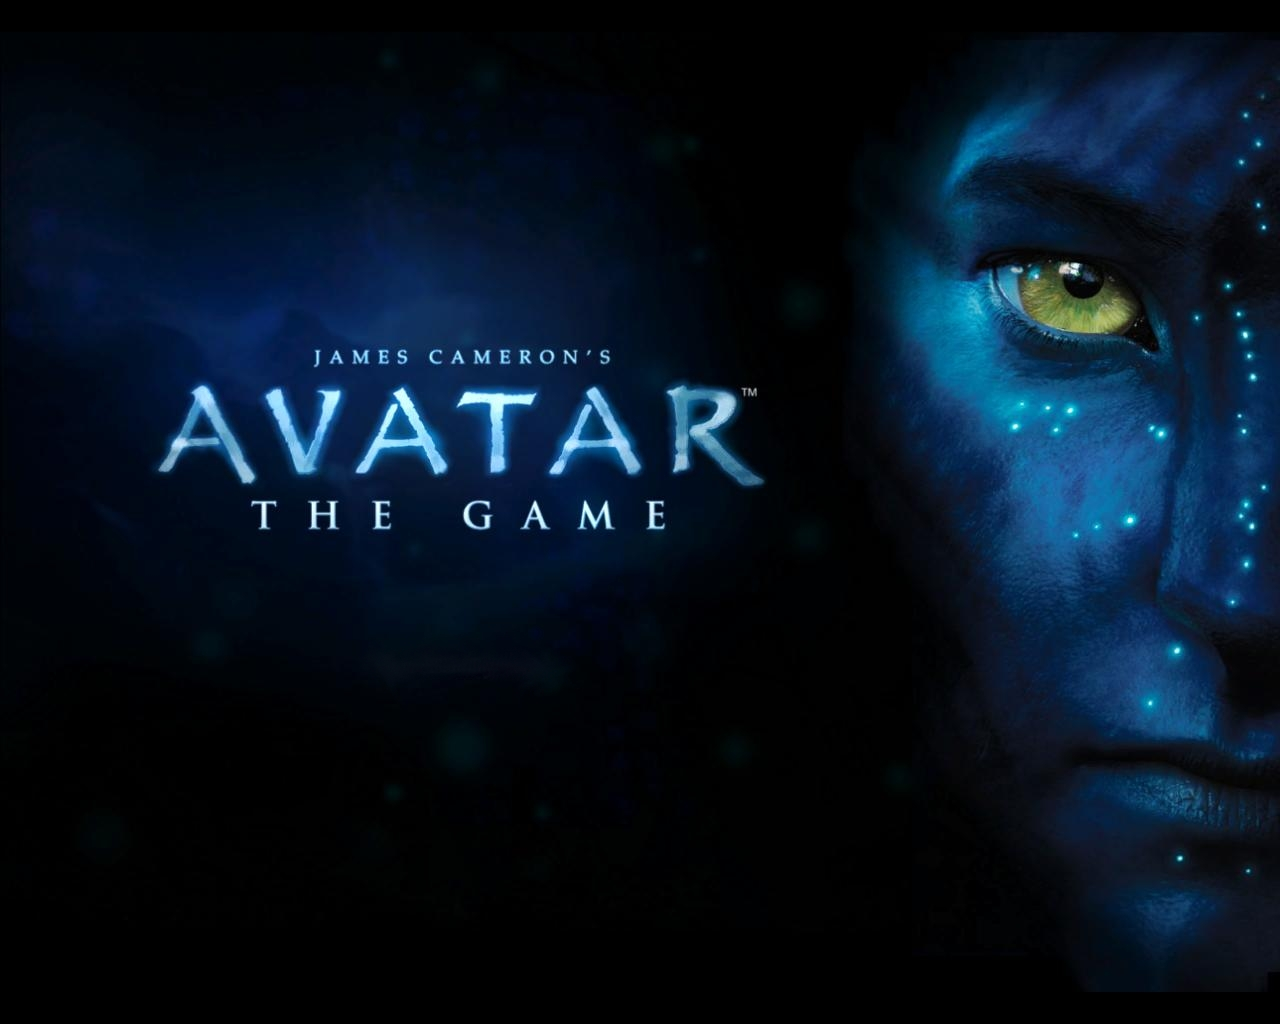 AVATAR THE GAME (REALIZATION DIRECTOR)